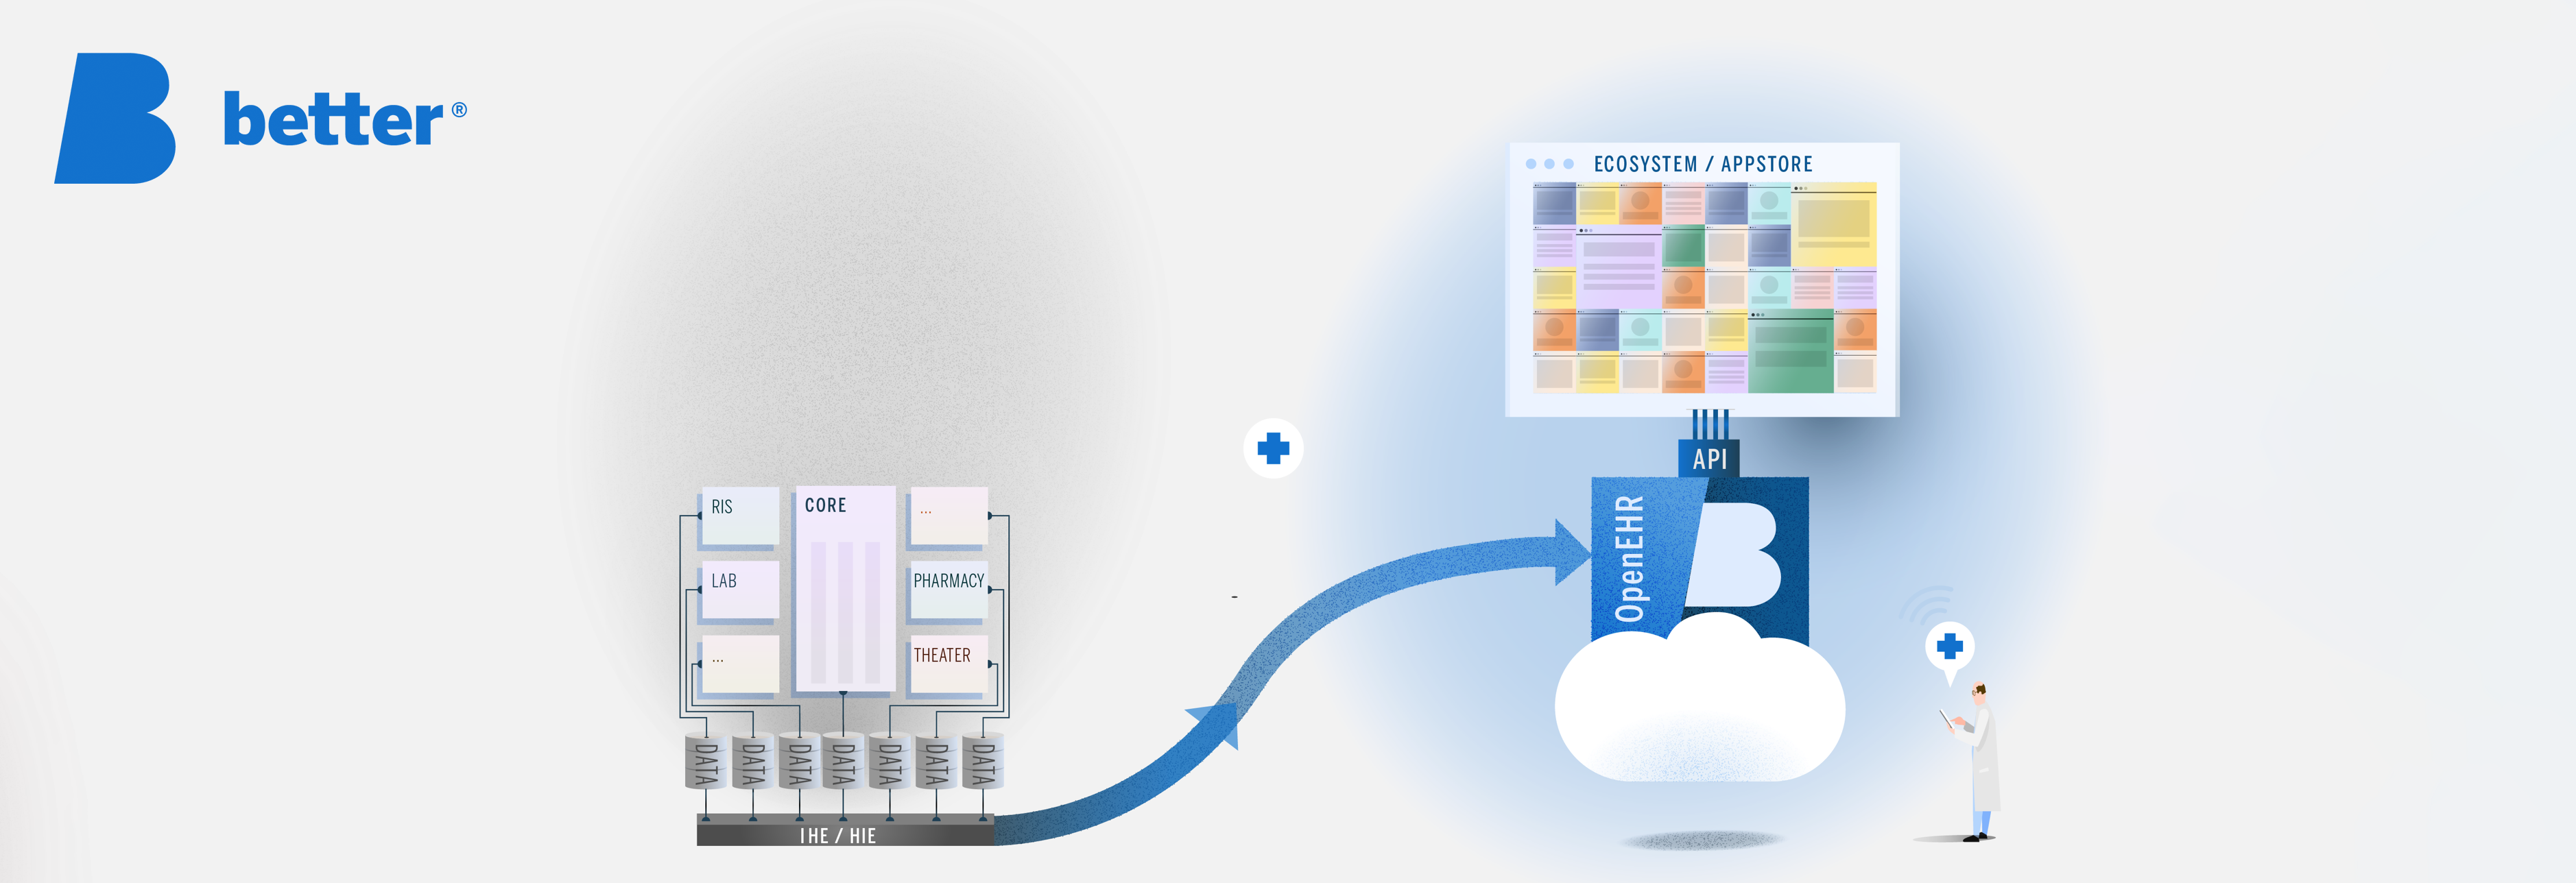 Application-centric and data-centric interoperability